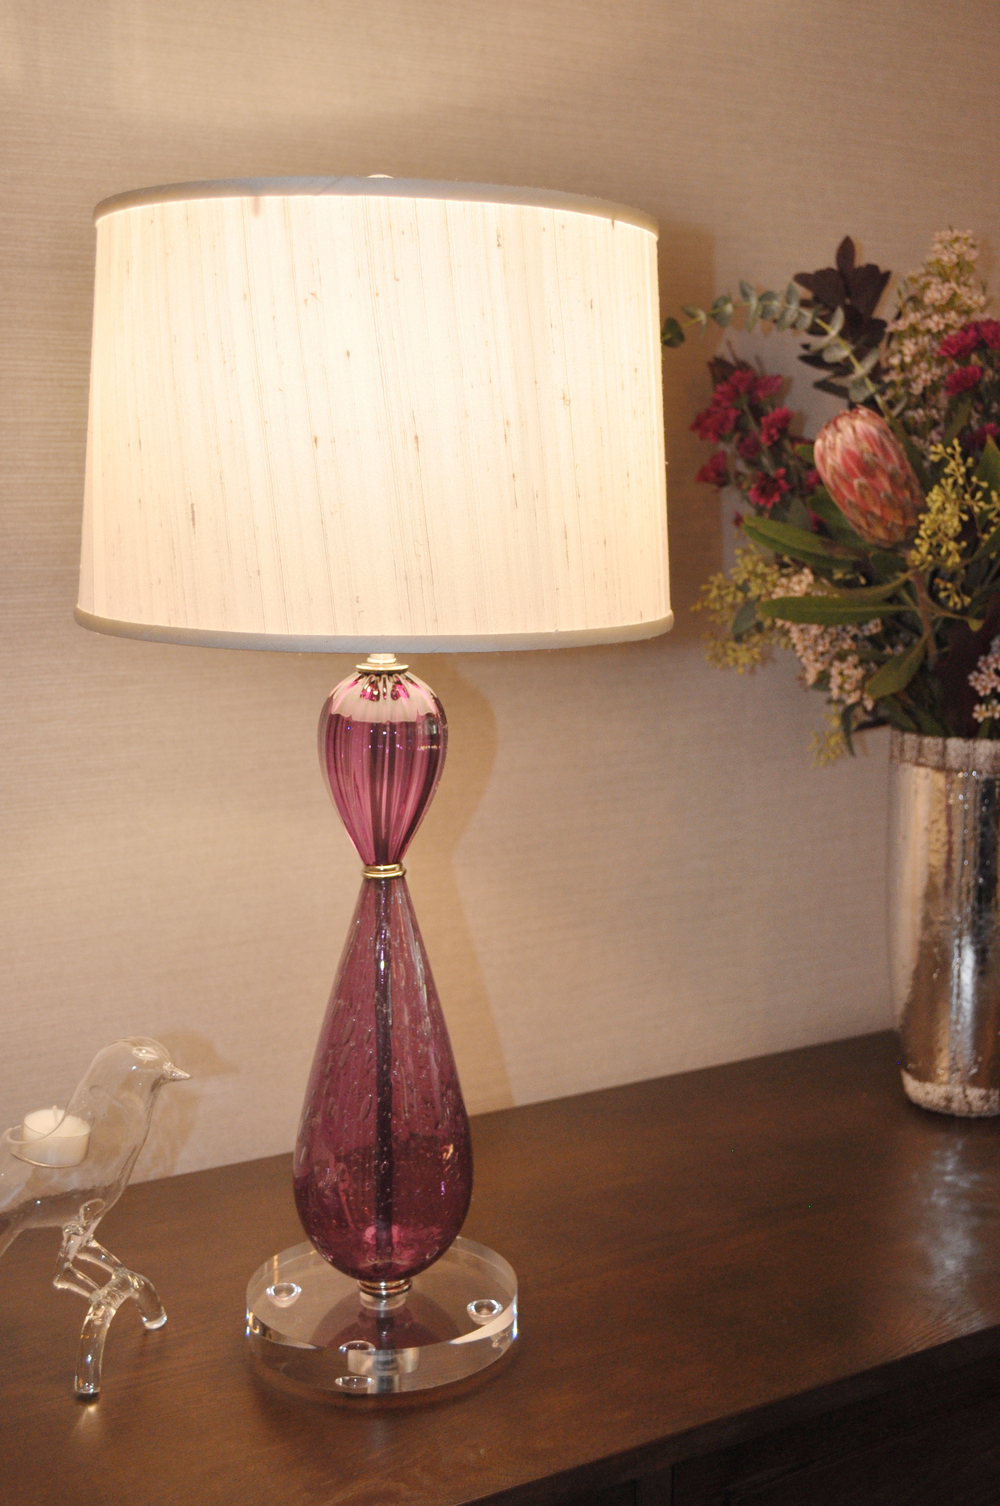 Home Entry_Table Lamp_KAM DESIGN.jpg